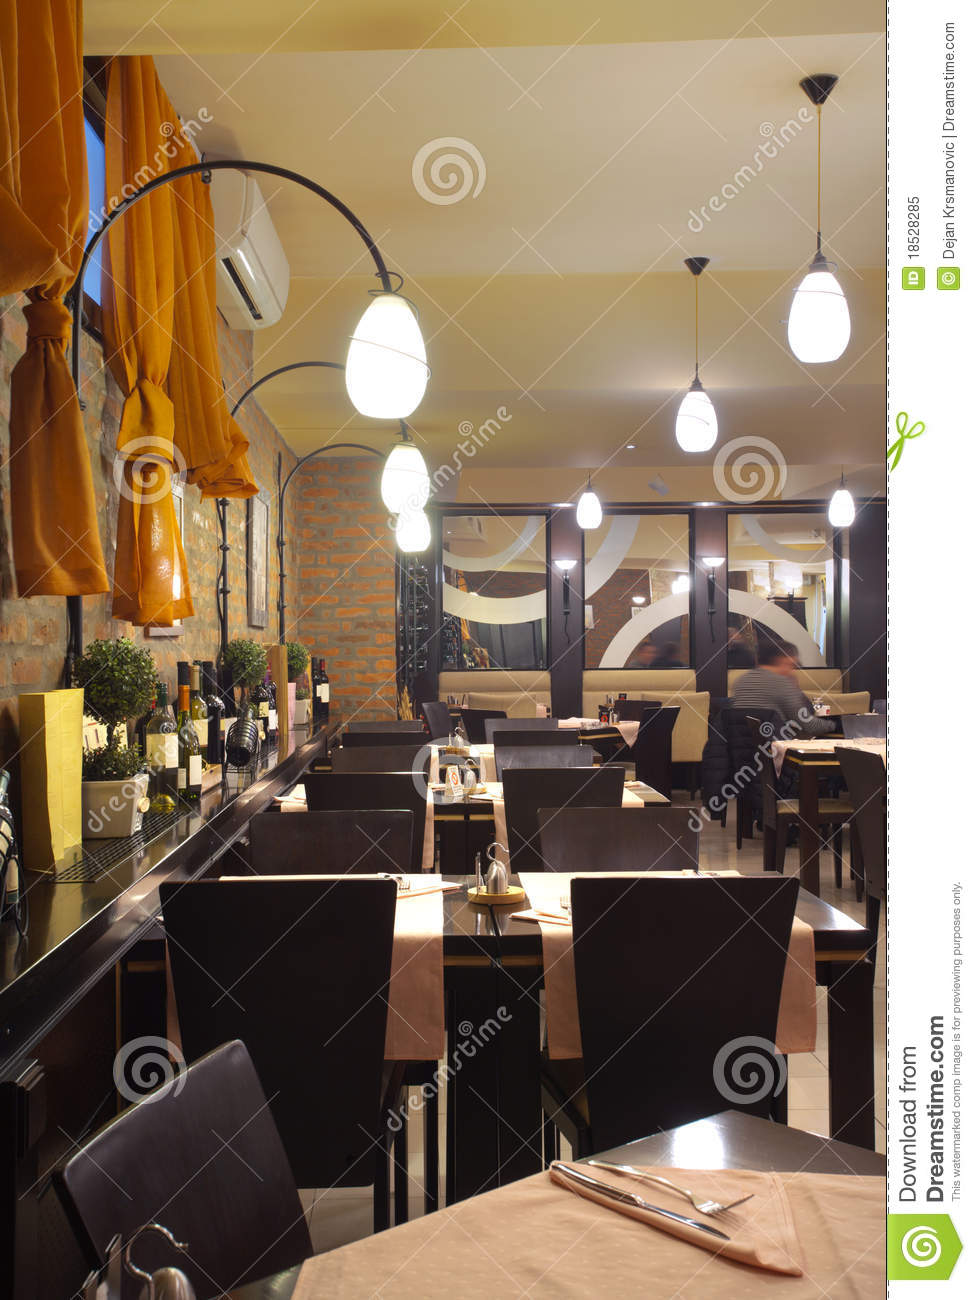 Restaurant interior royalty free stock photo image